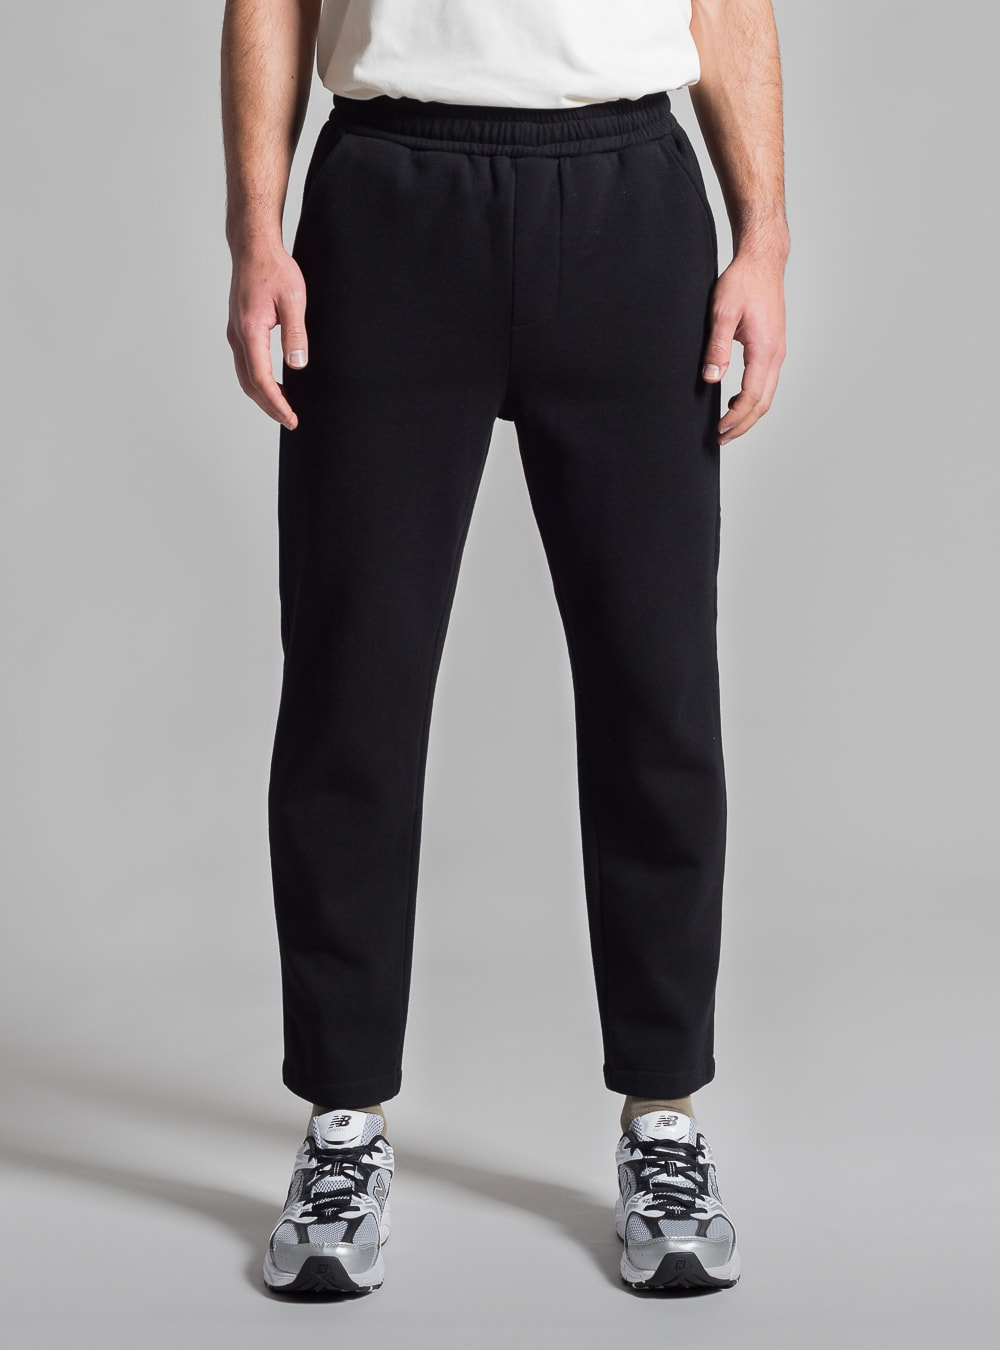 Piqué track pants (black) made in Portugal by wetheknot